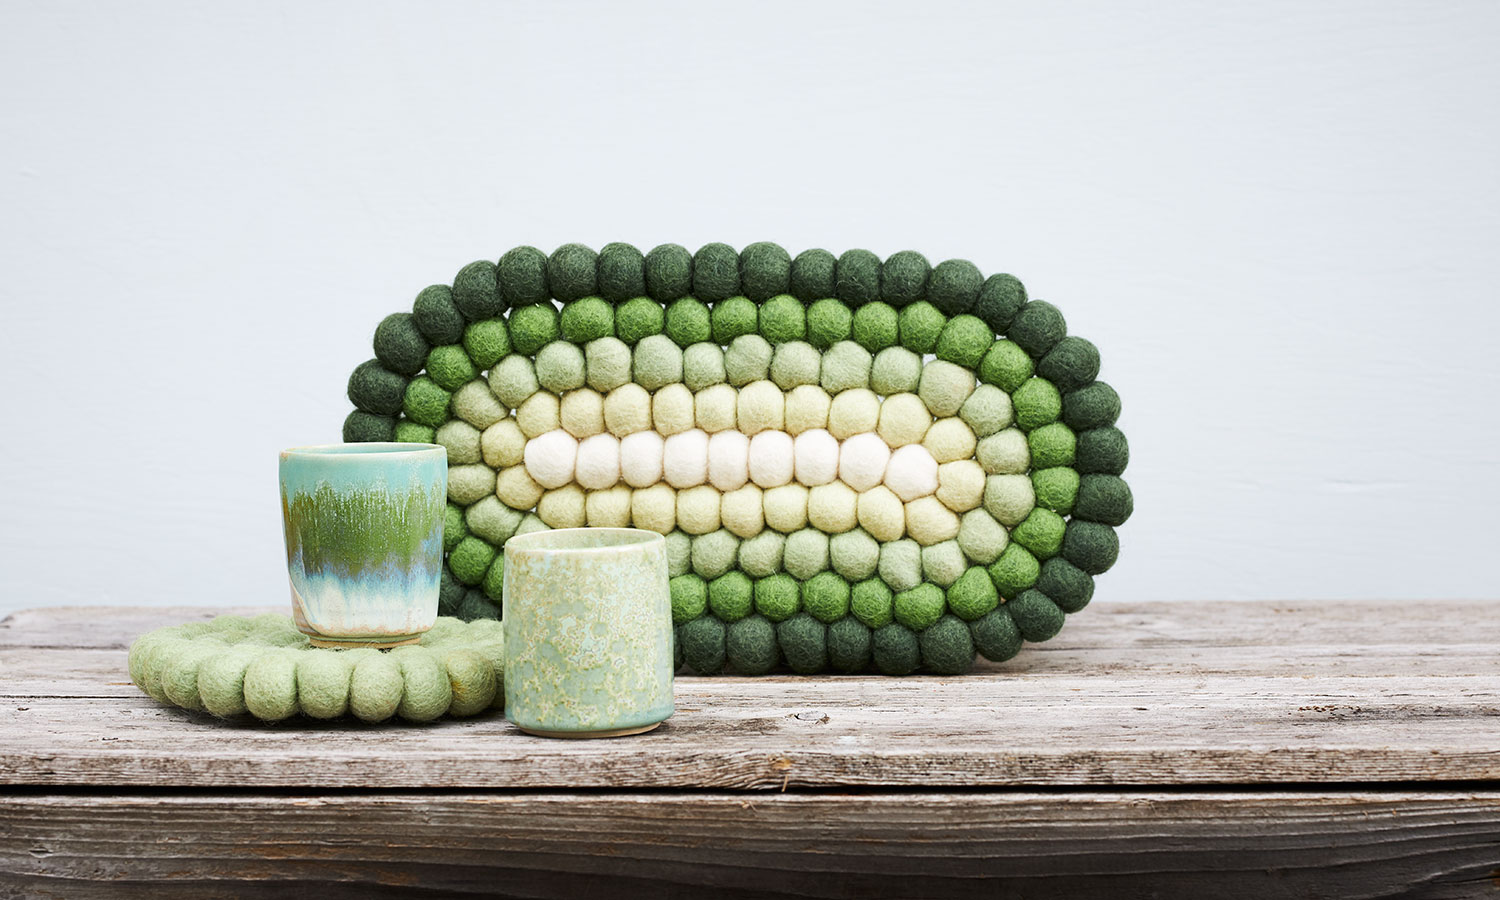 Oval and round wool trivets in green light shades, together with ceramic cups in the same green shade.